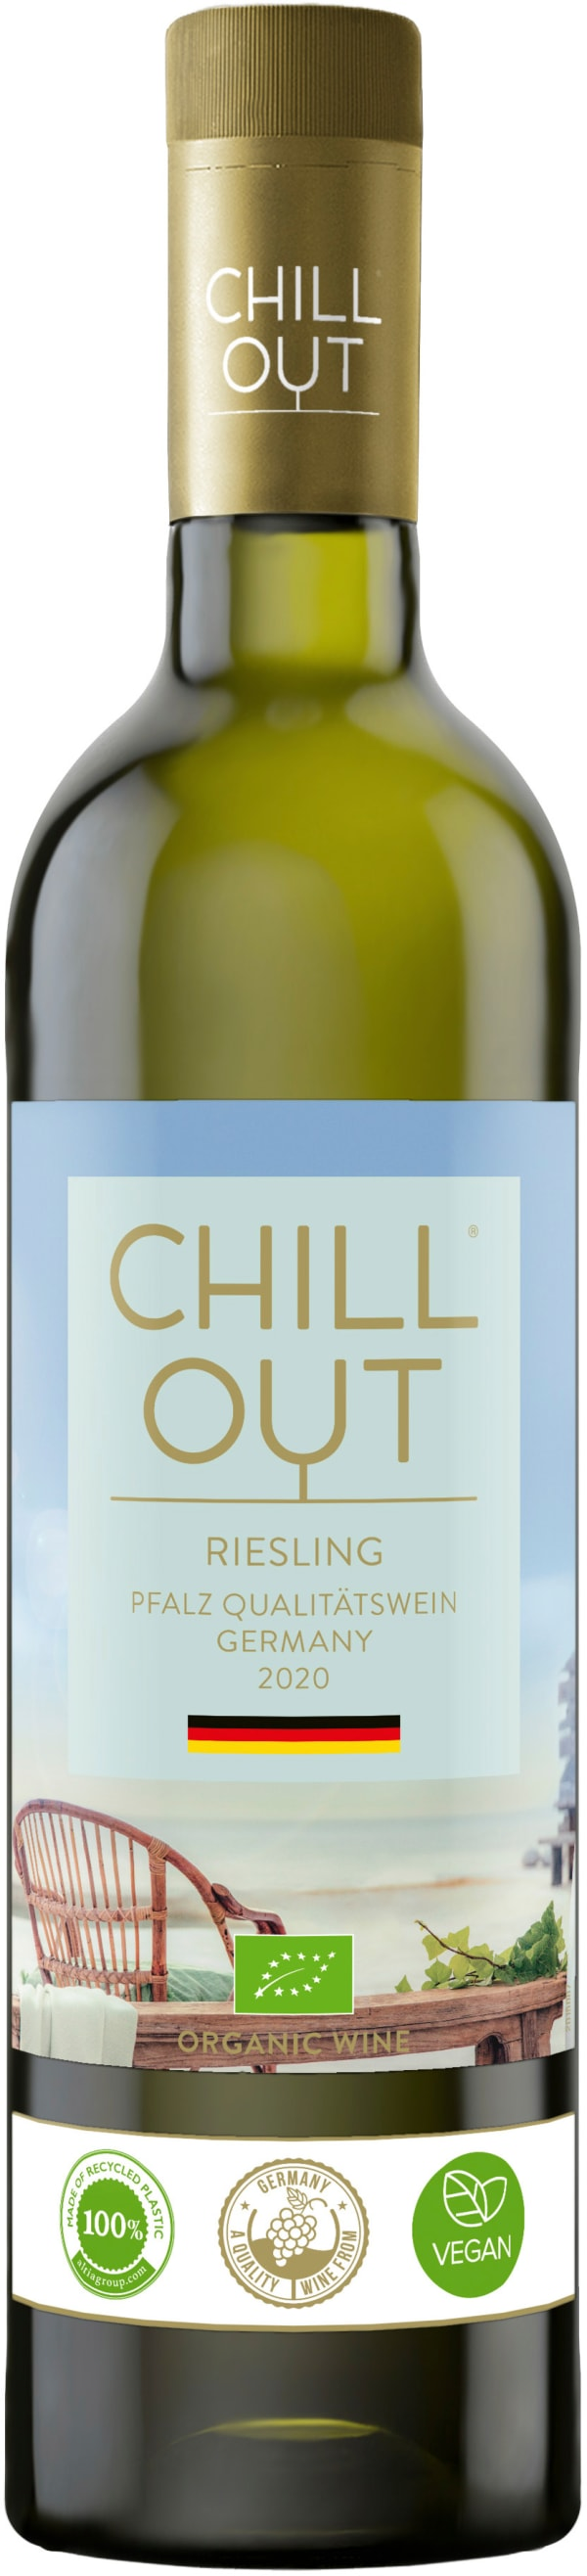 Chill Out Riesling 2018 plastflaska